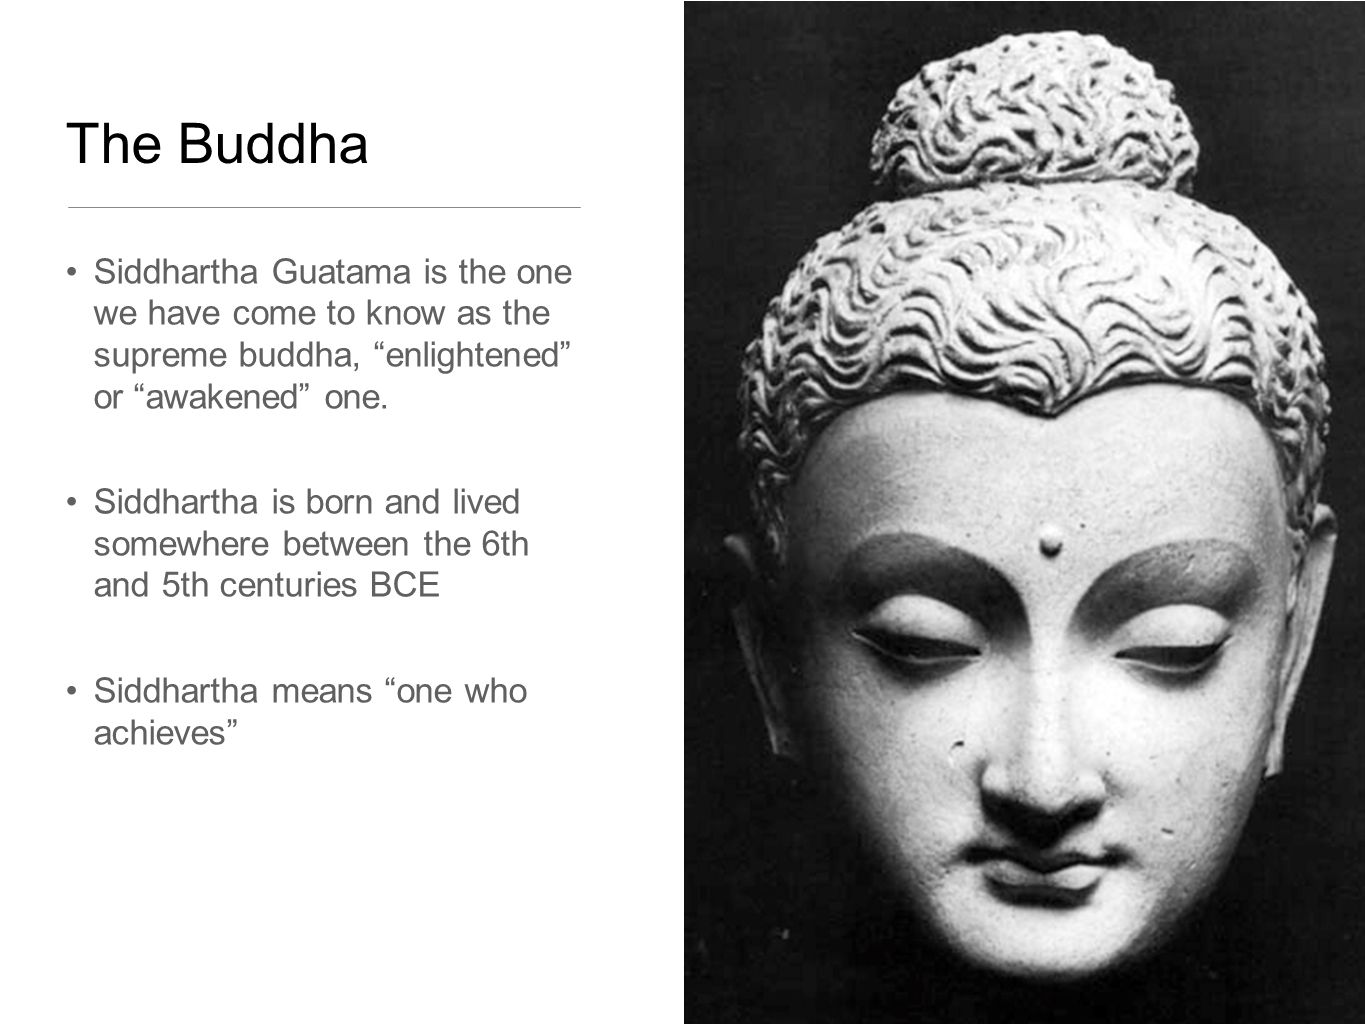 The Buddha Siddhartha Guatama is the one we have come to know as the supreme buddha, enlightened or awakened one.